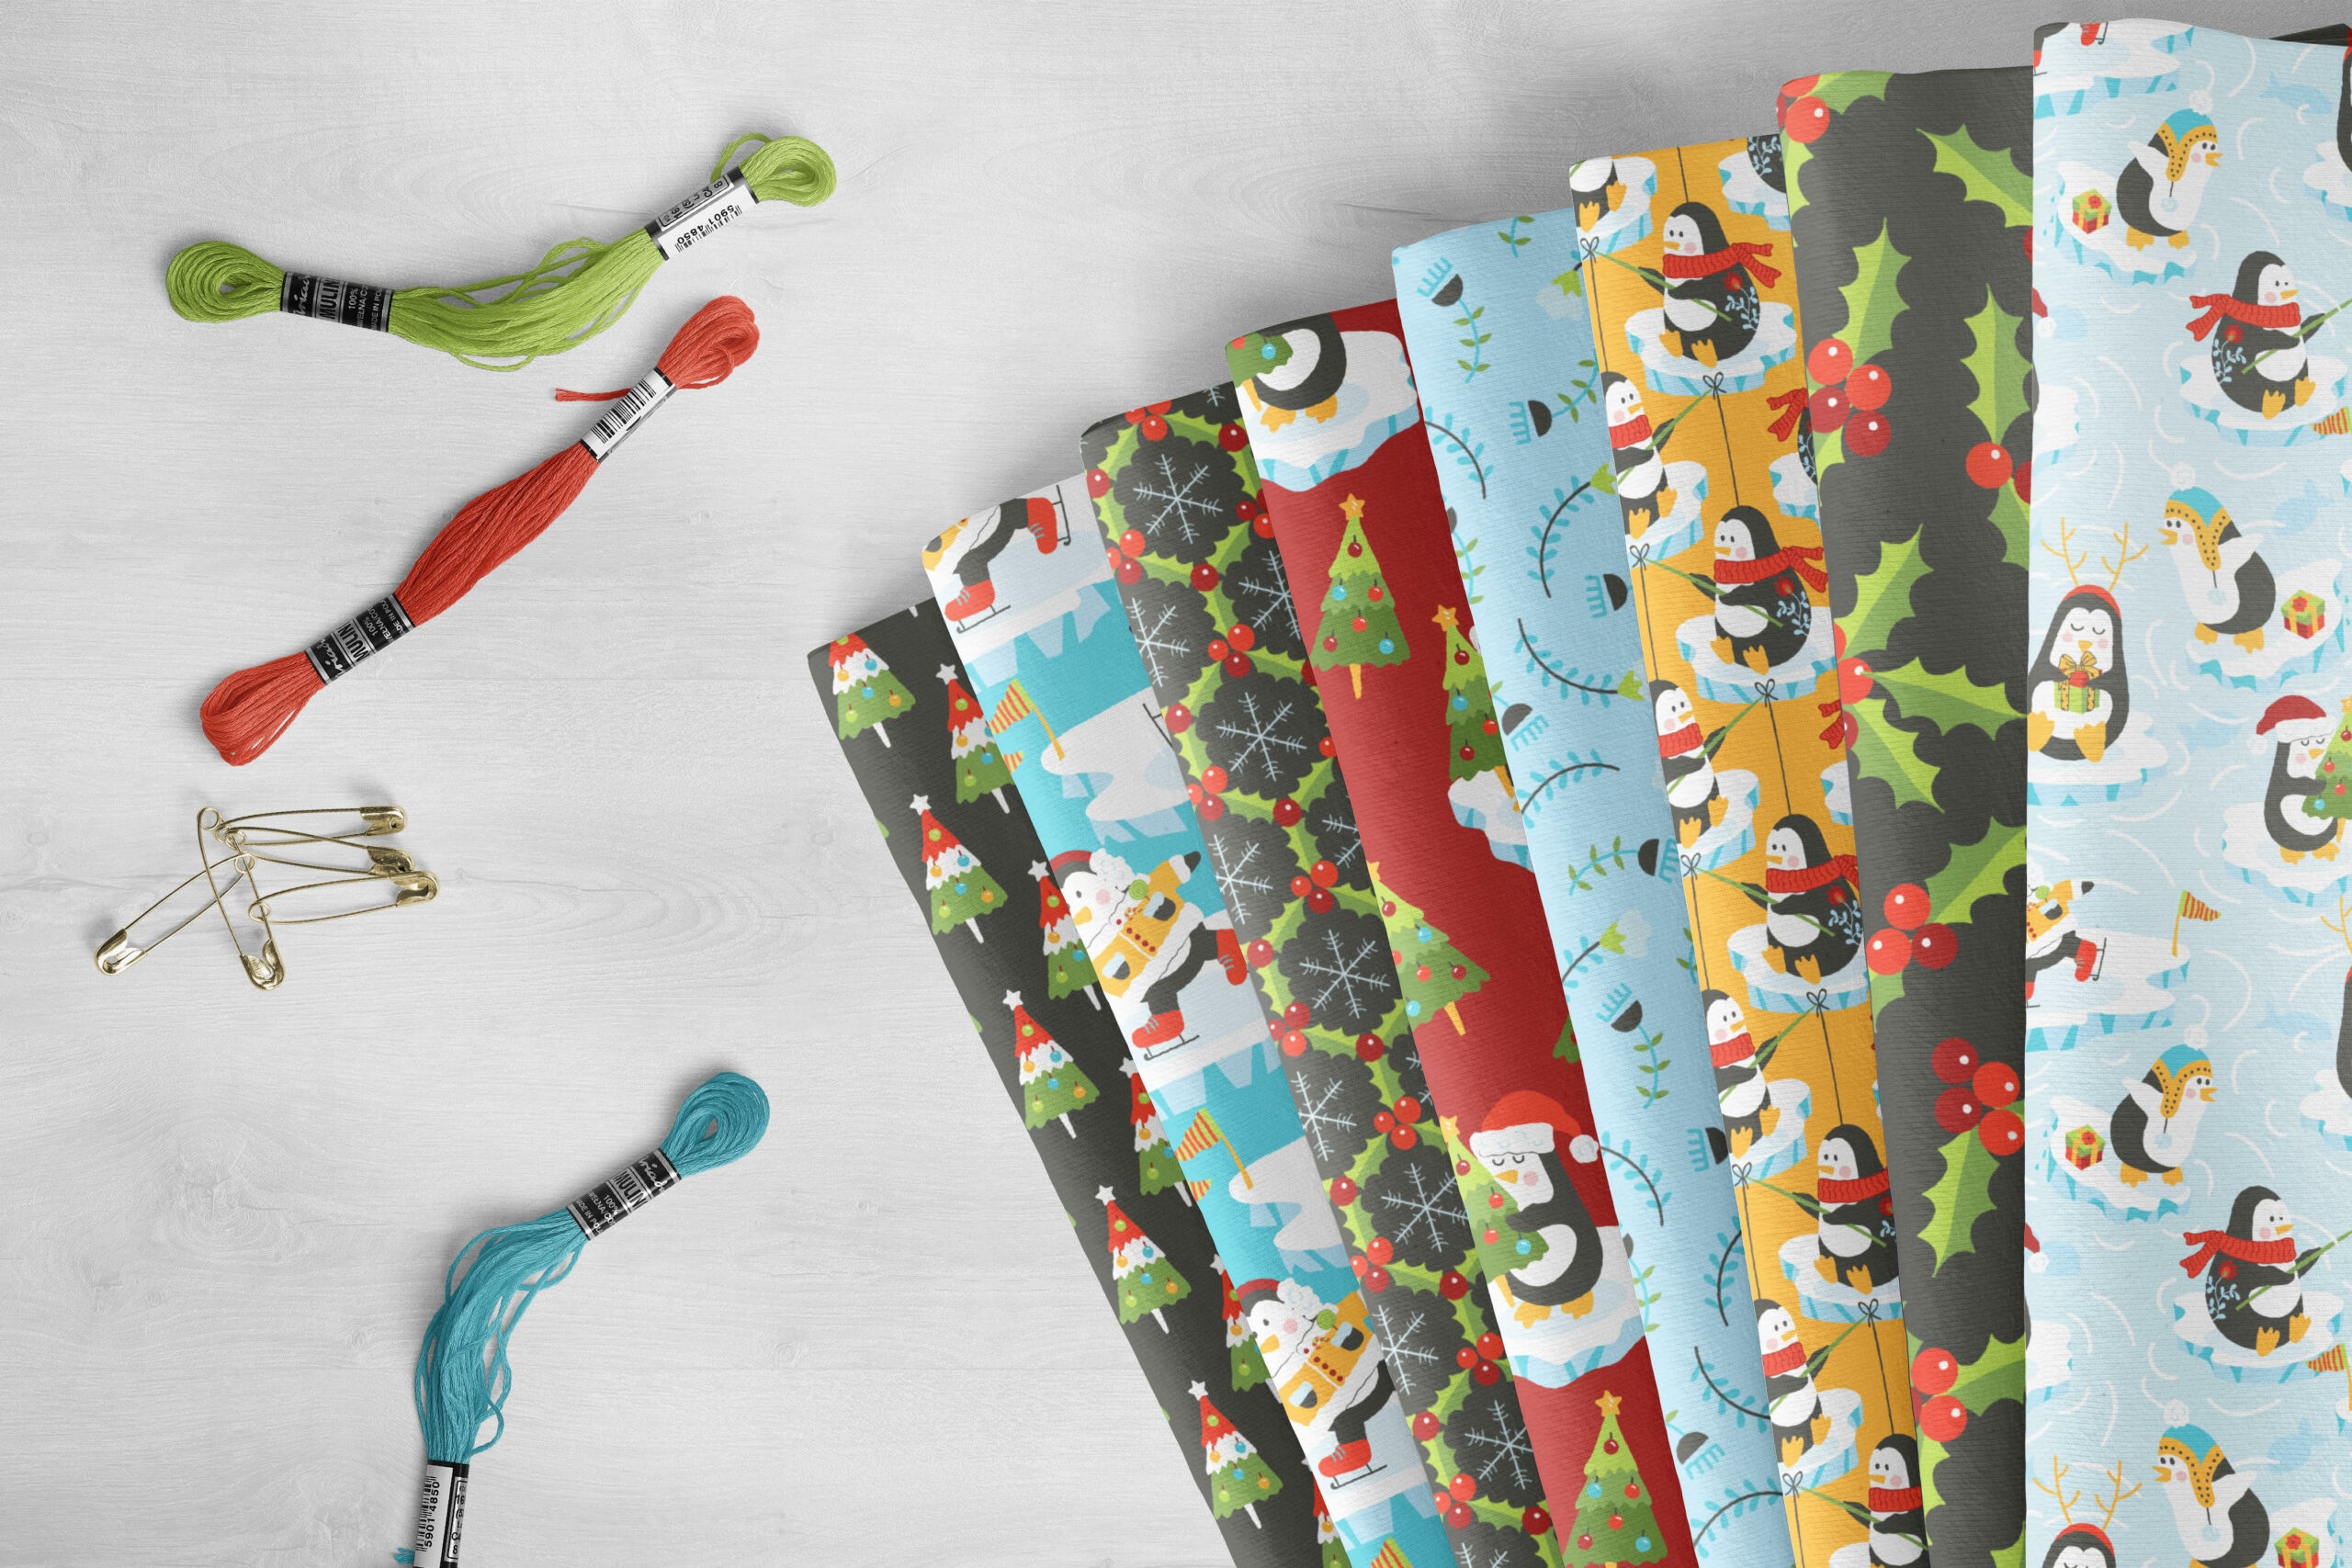 Holiday fabrics featuring penguin, holly, and evergreen tree designs